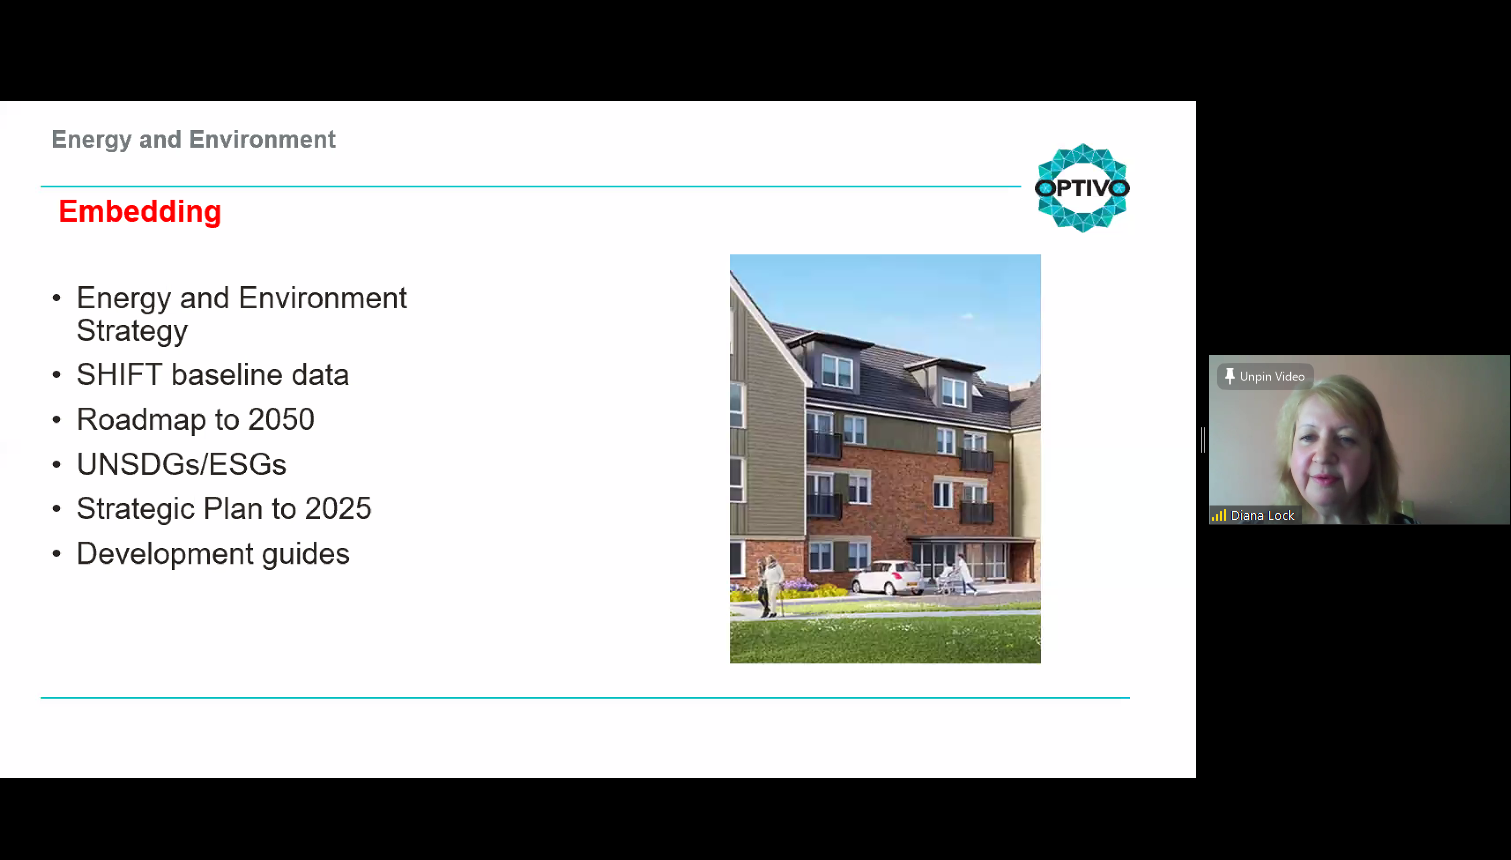 Diana Lock presents a slide on how her housing association is tackling the climate emergency